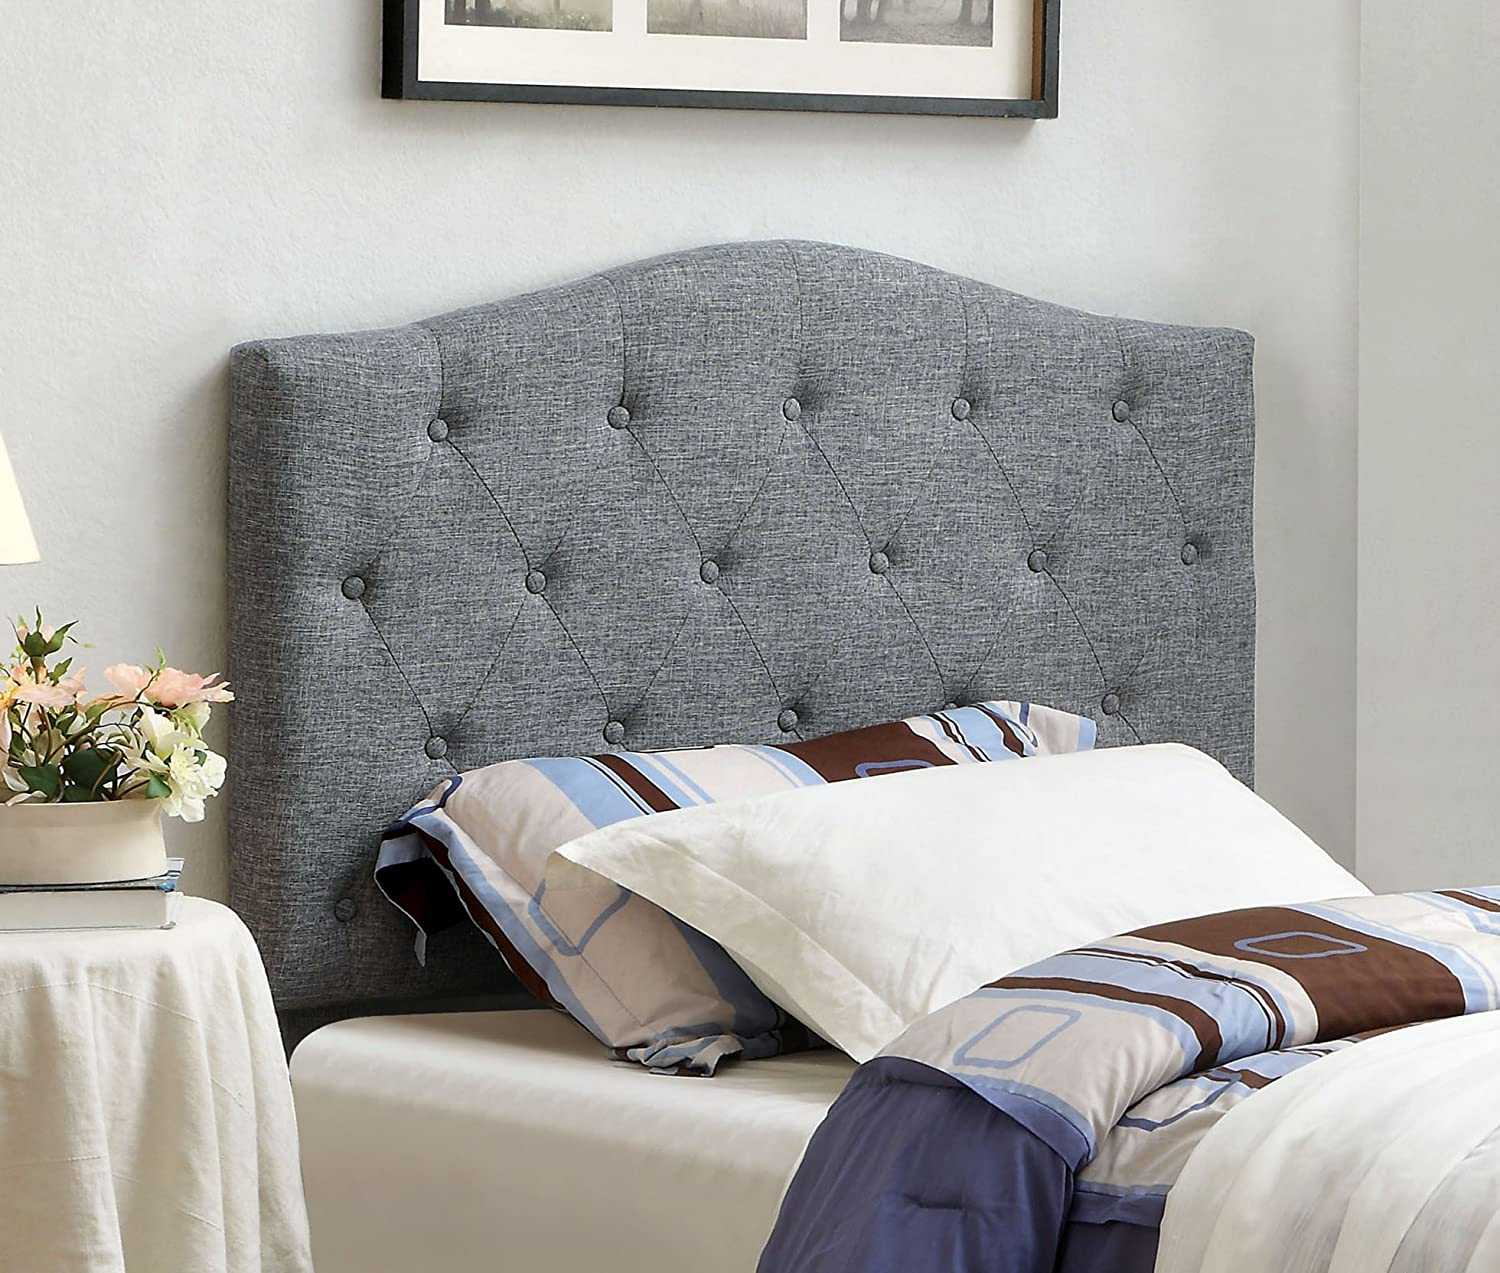 Furniture of America Satin Flax Fabric Button Tufted Headboard - Twin - Gray